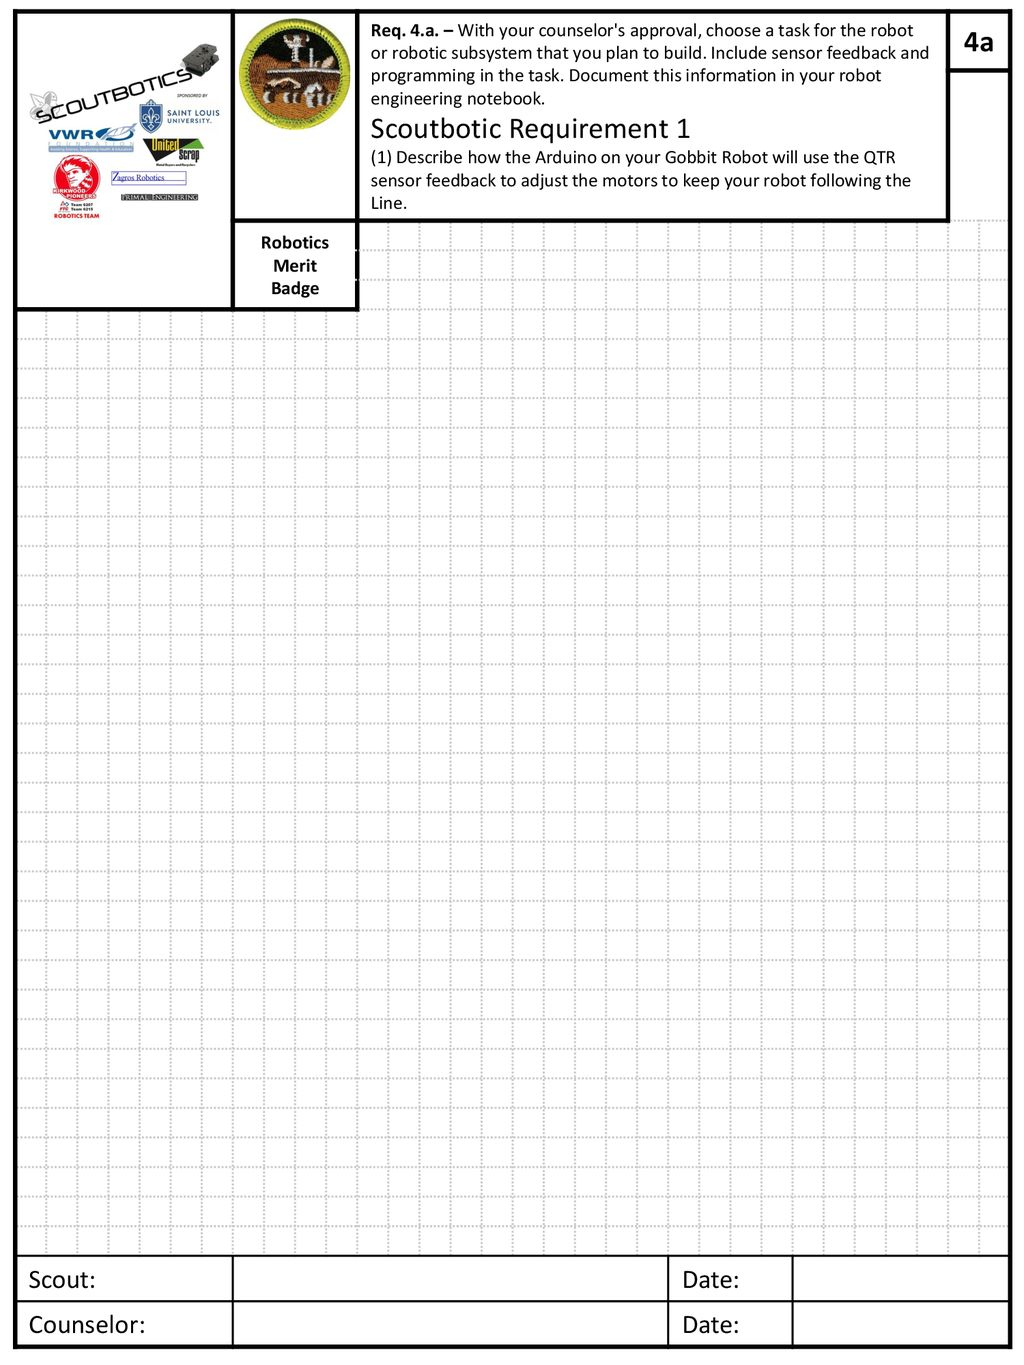 Scoutbotics Engineering Notebook Ppt Download